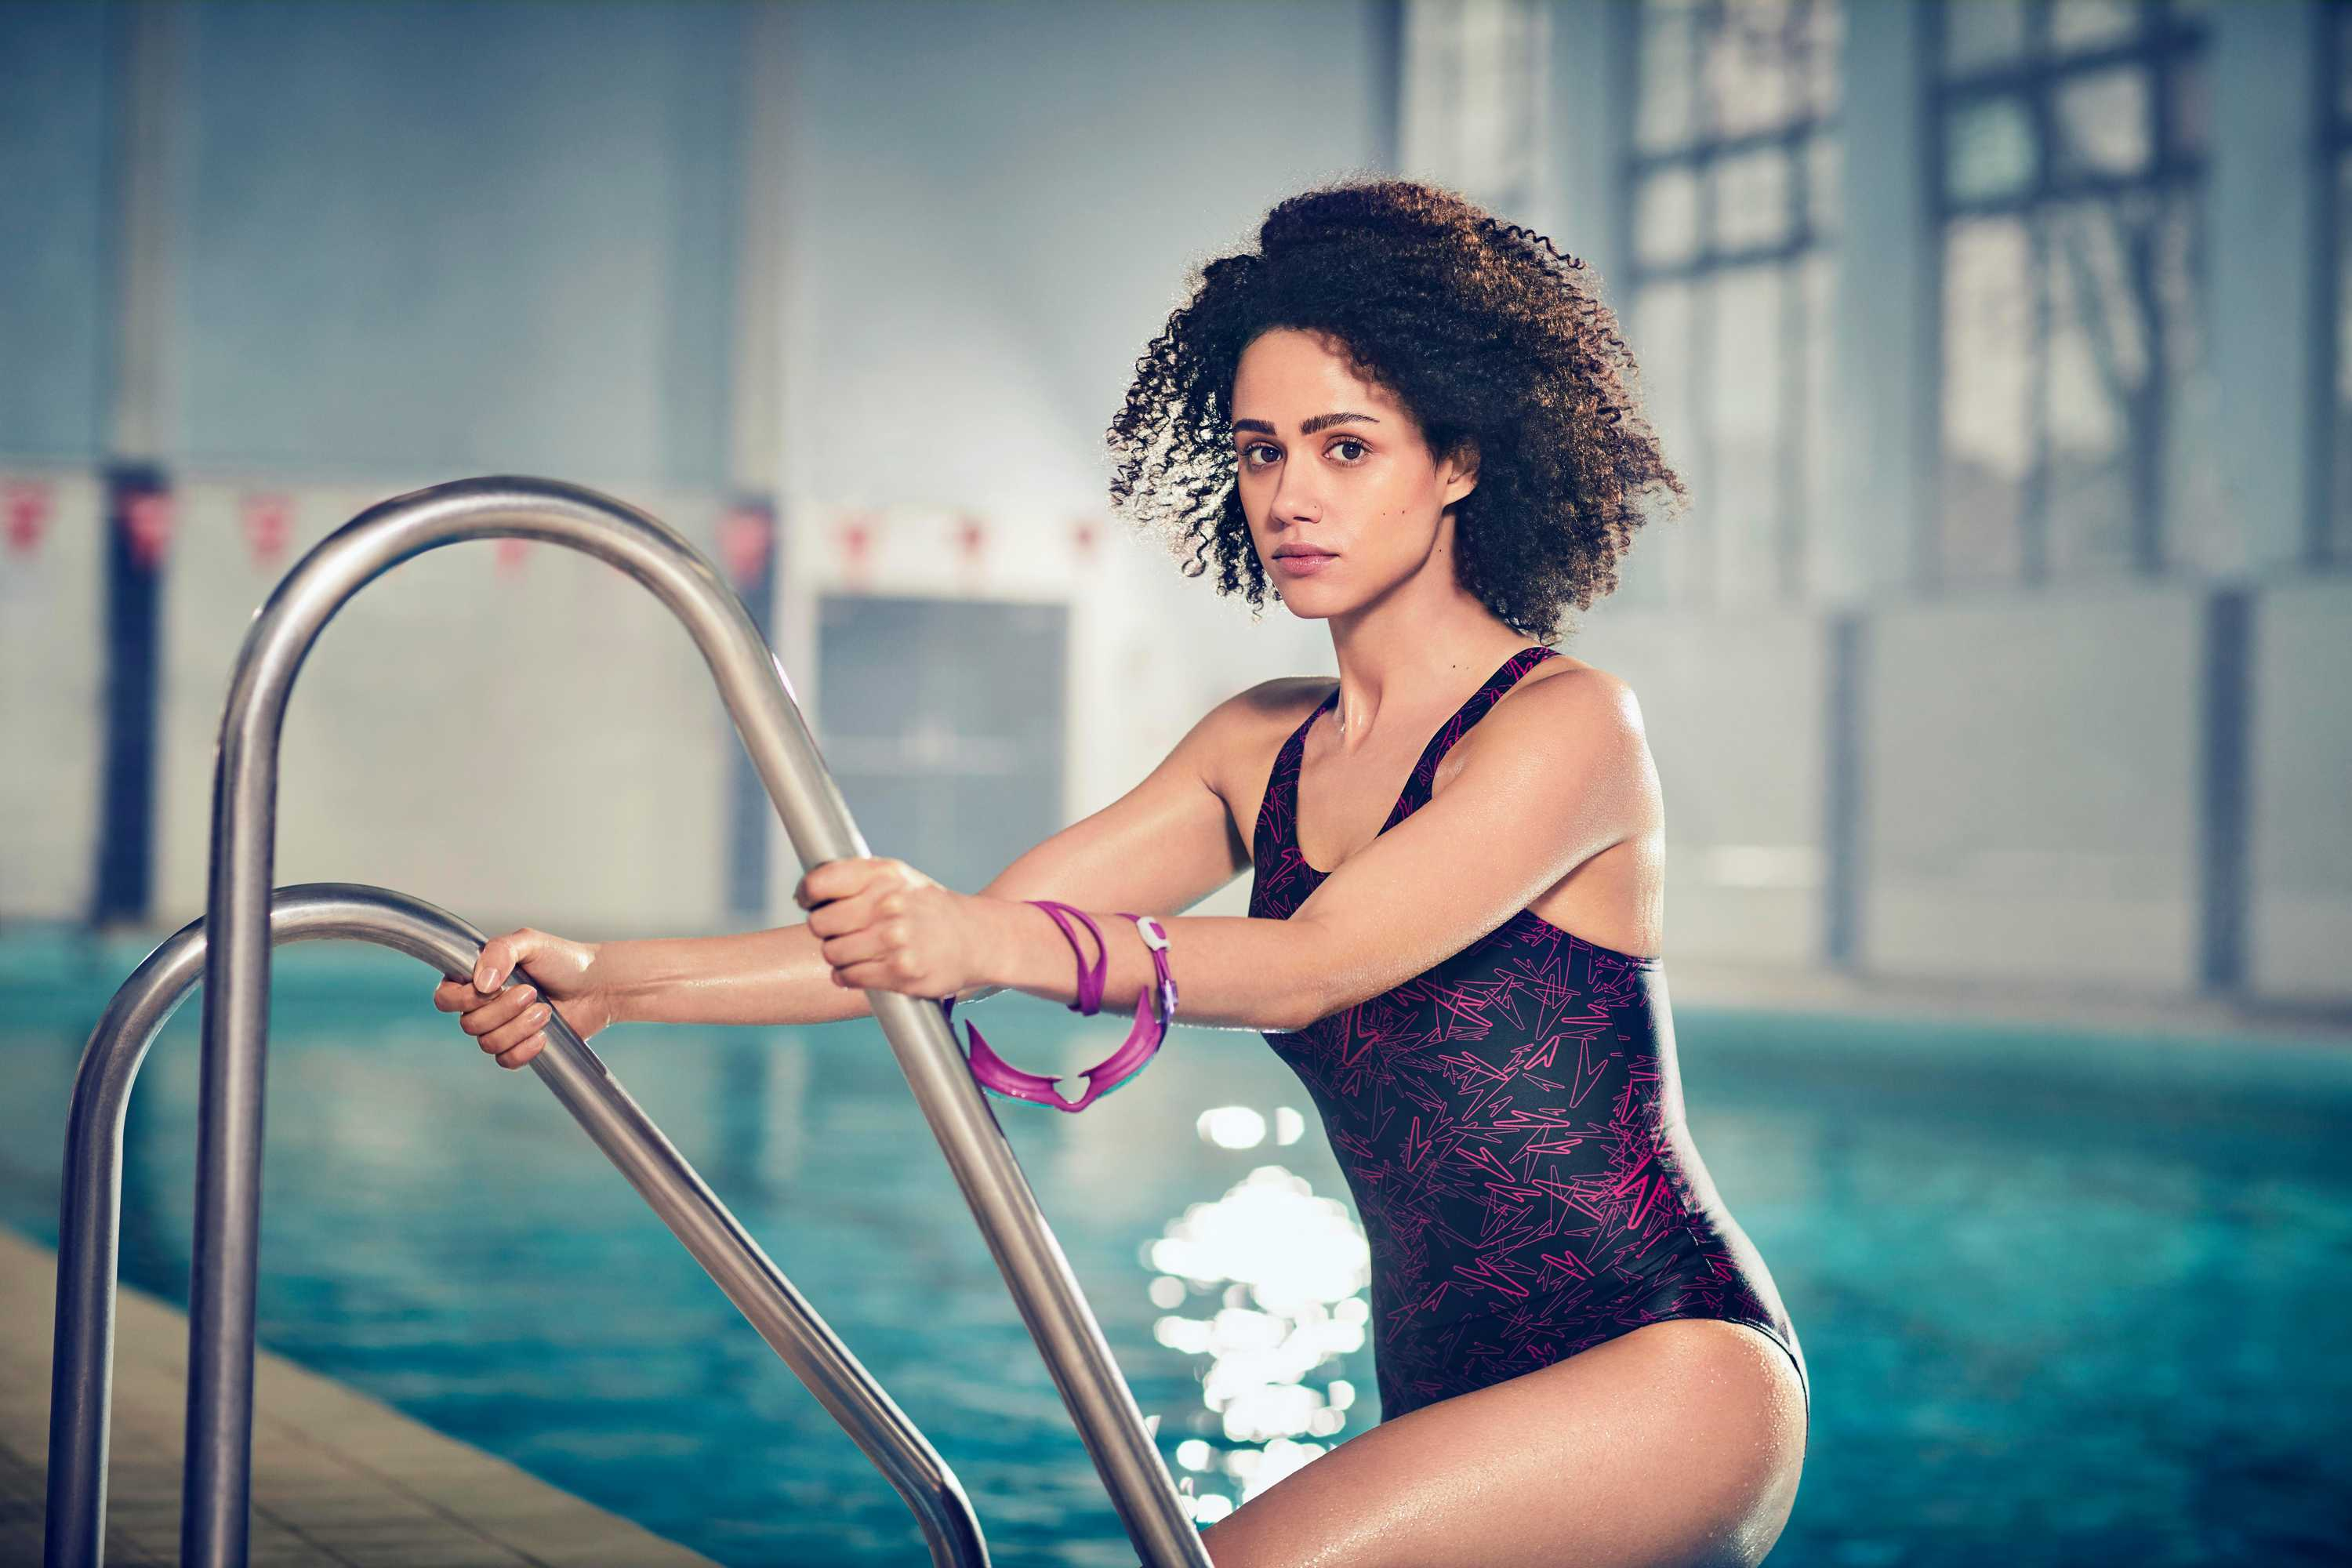 nathalie-emmanuel - corporate bytes